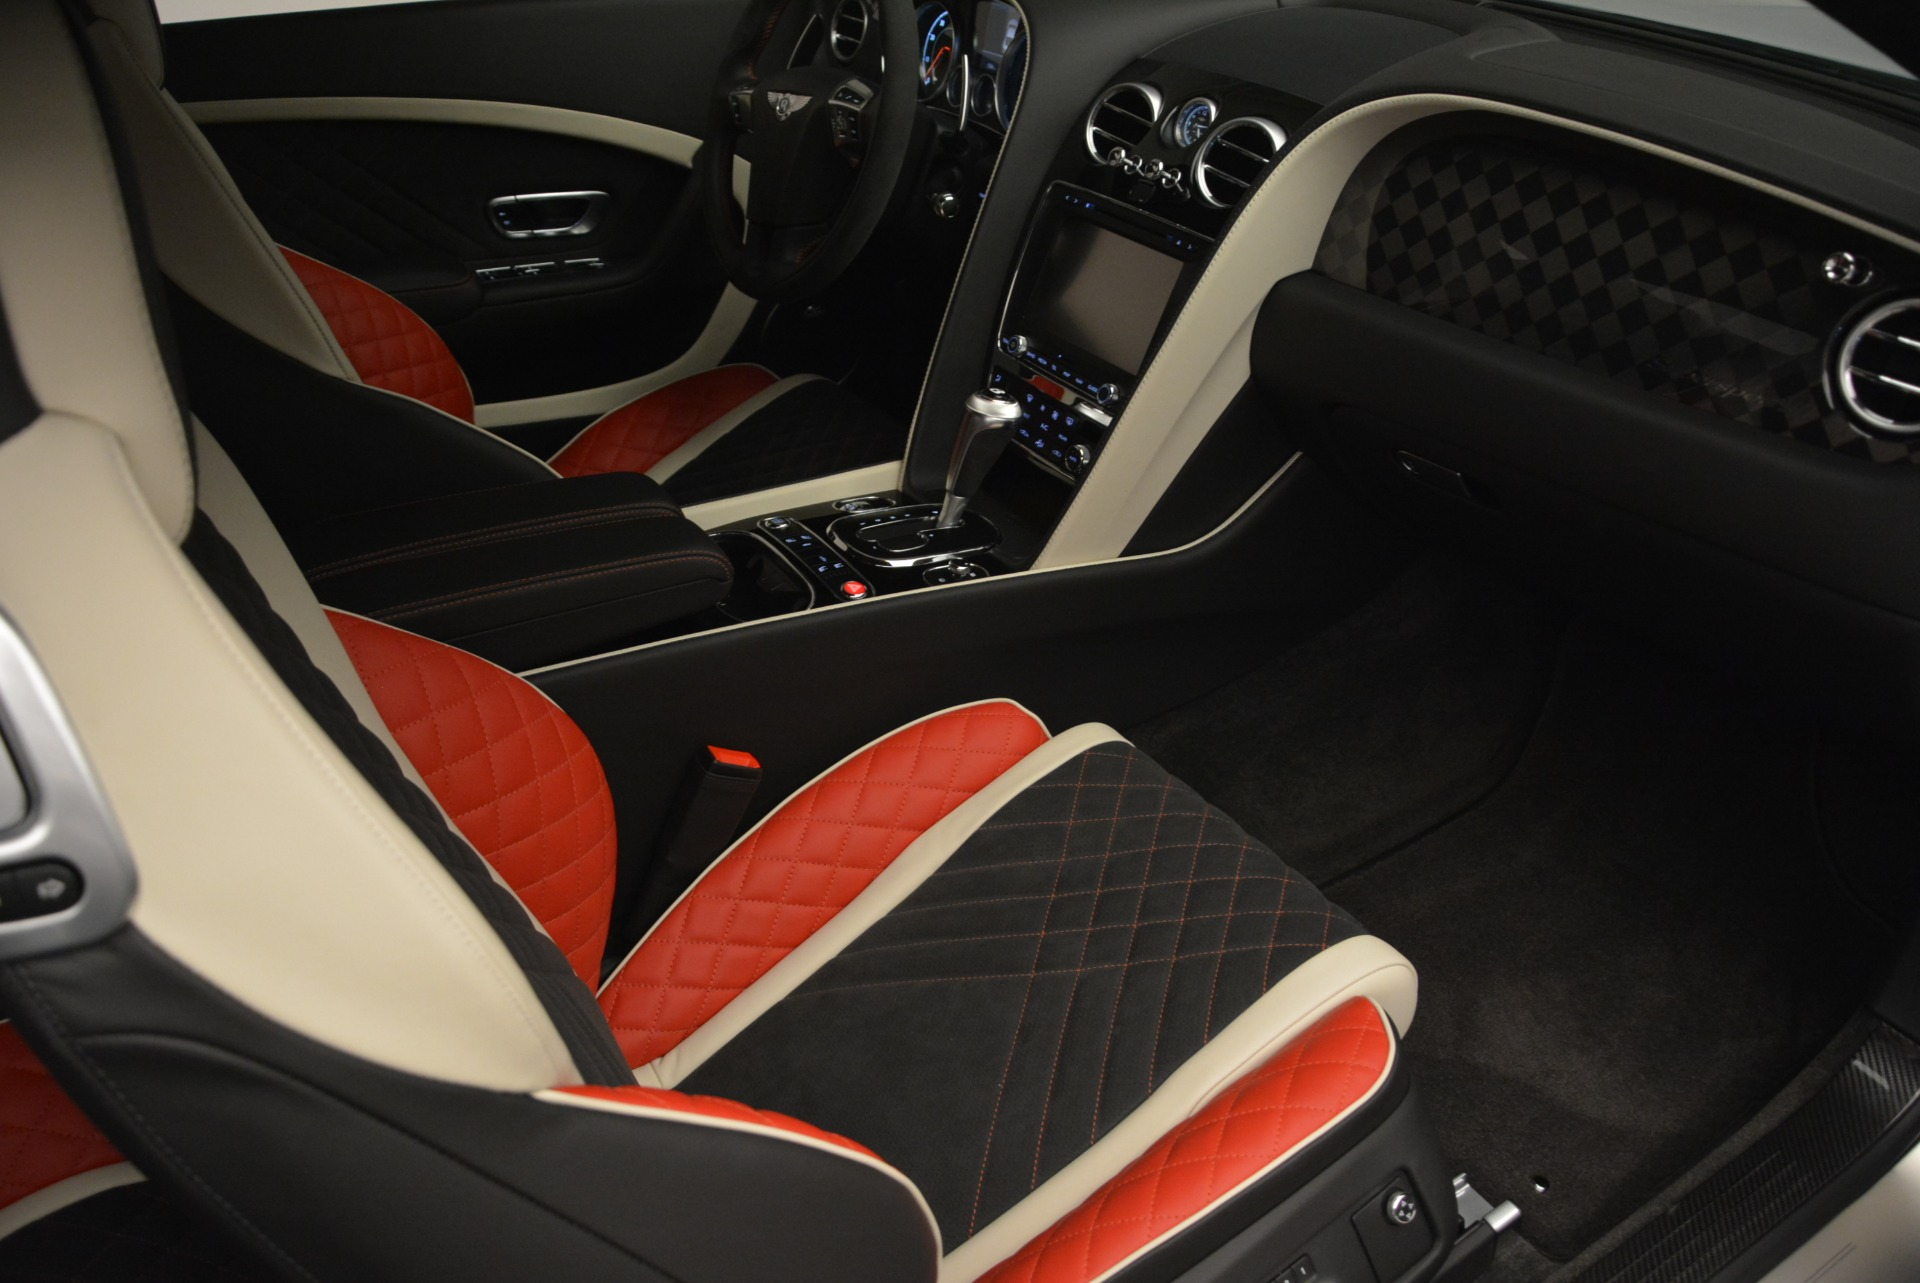 Used 2017 Bentley Continental GT Supersports For Sale In Westport, CT 2206_p27